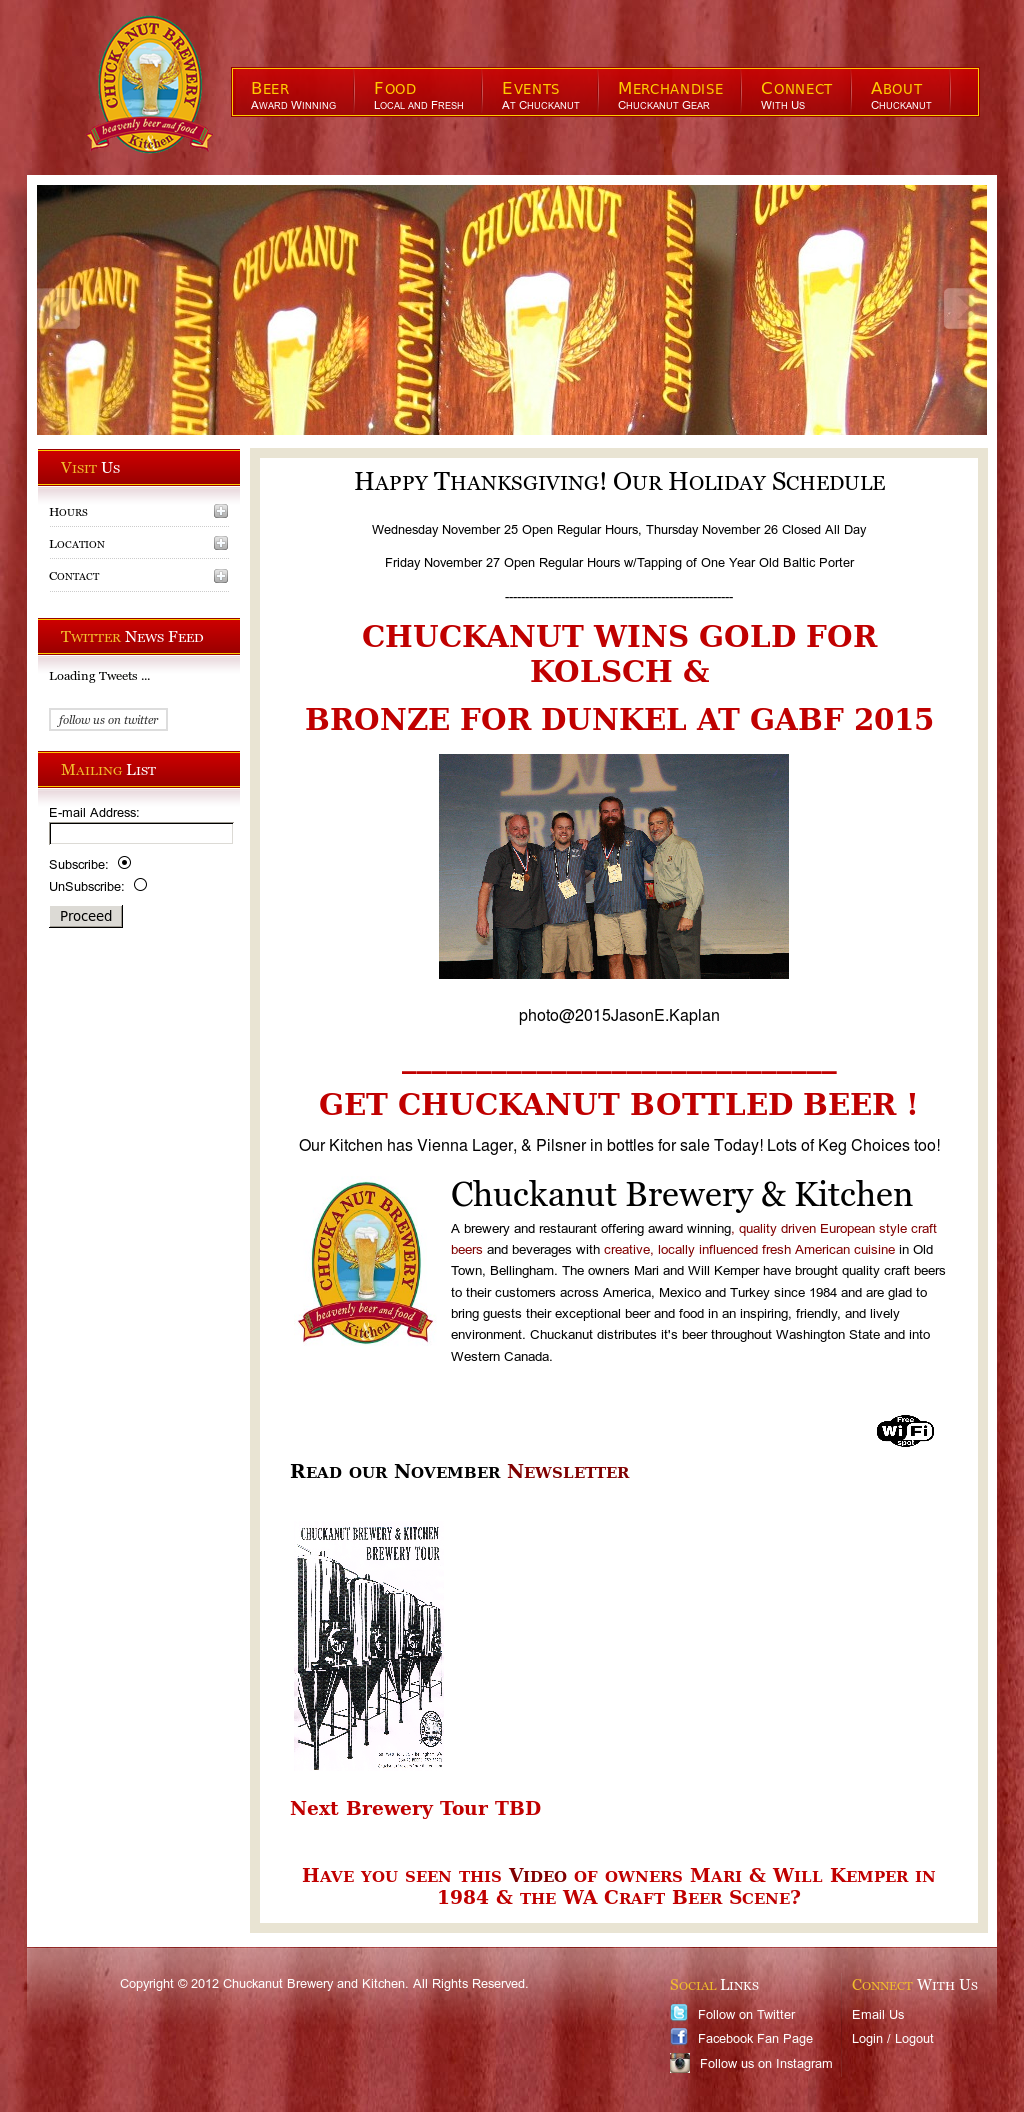 Chuckanut Brewery & Kitchen Competitors, Revenue and Employees ...